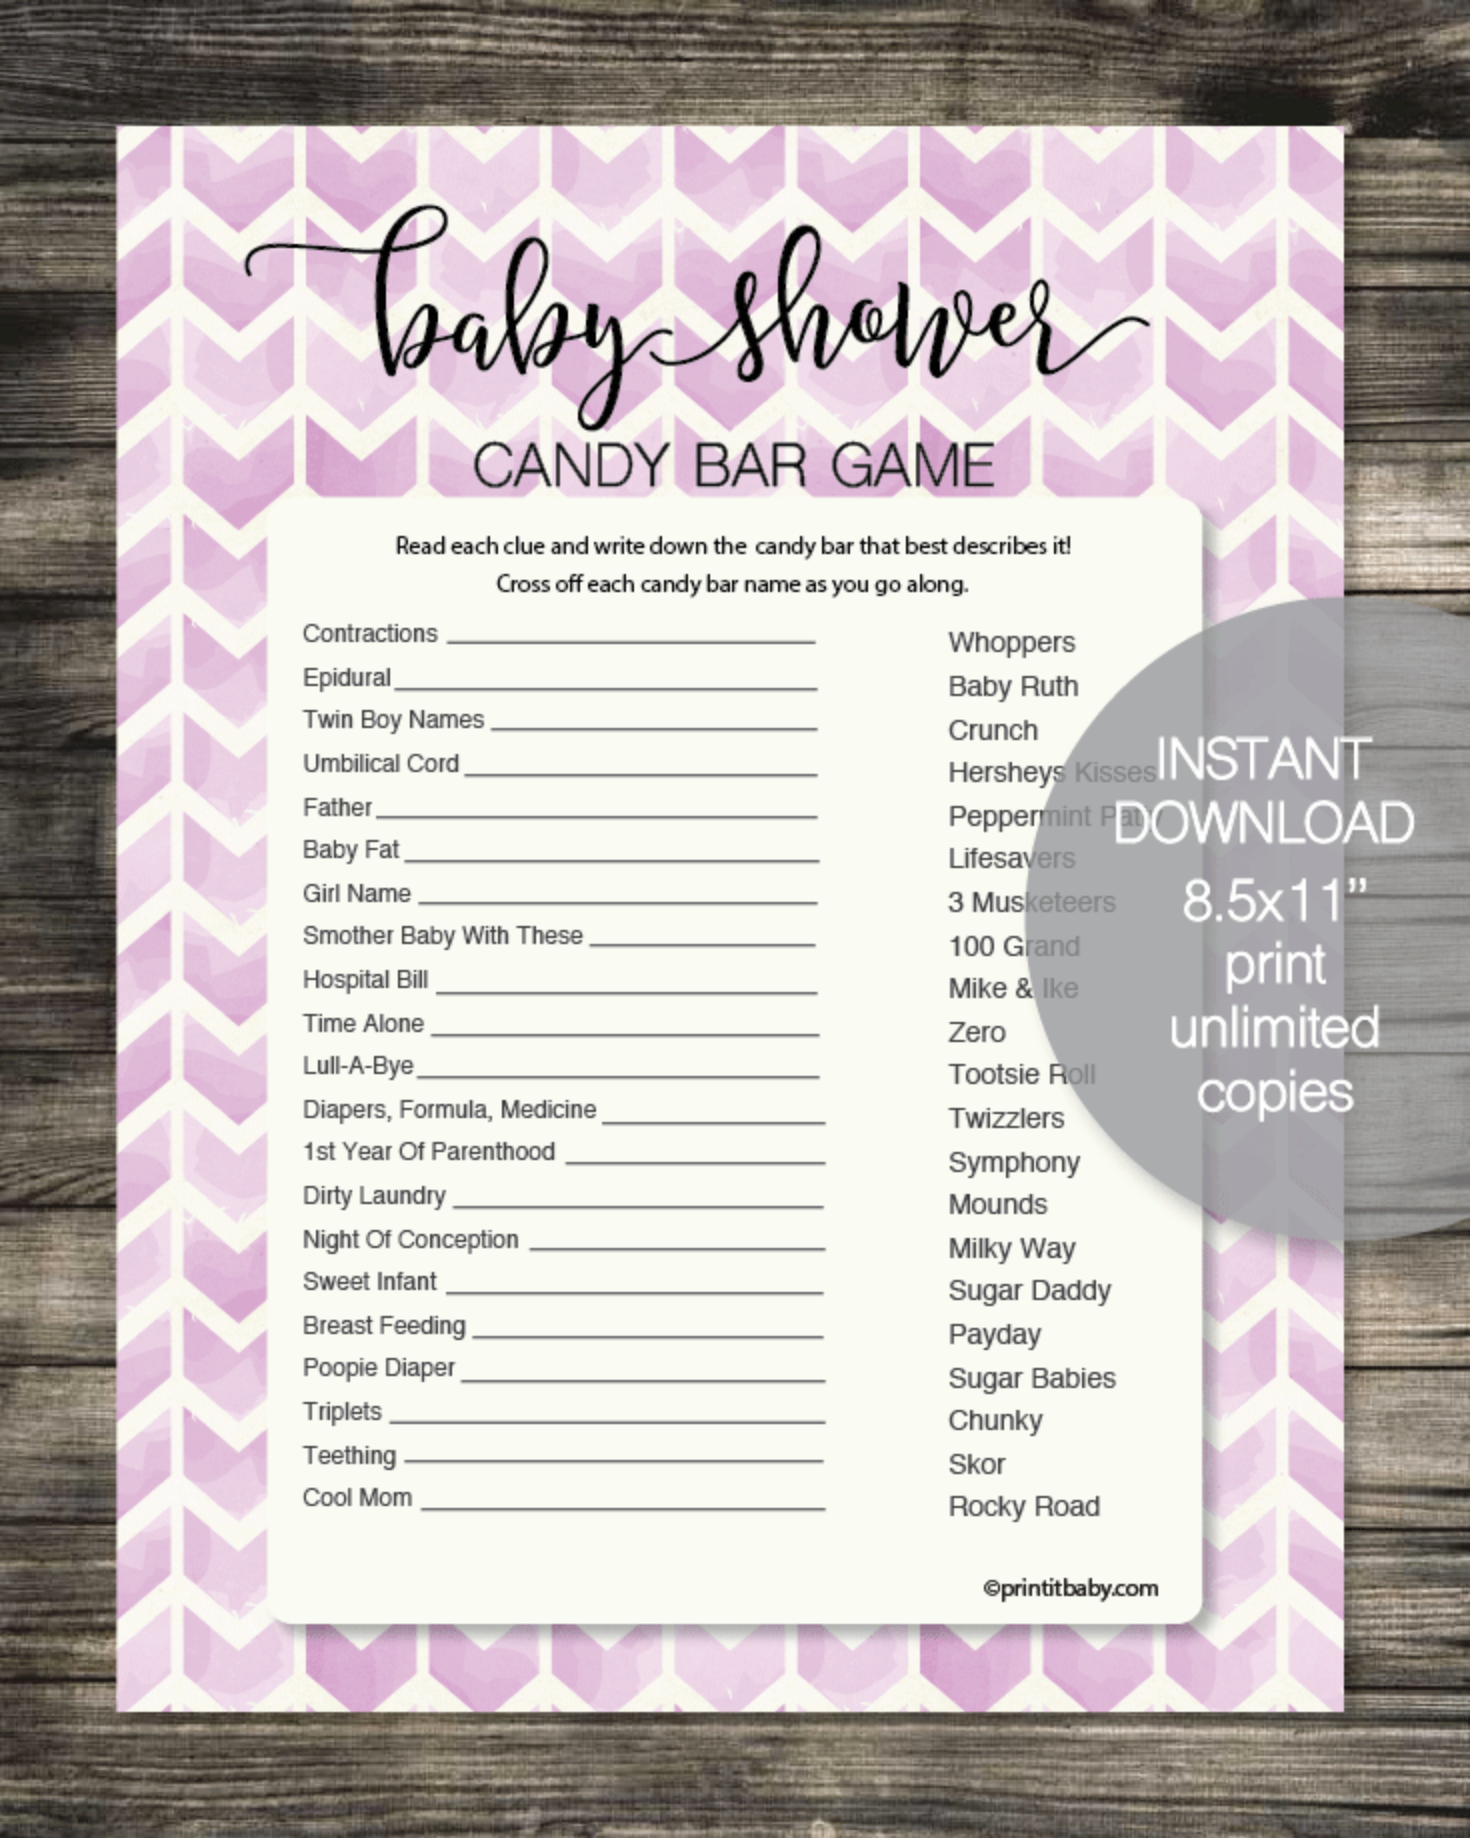 Baby Shower Candy Bar Game - Purple Chevron Watercolor Arrows